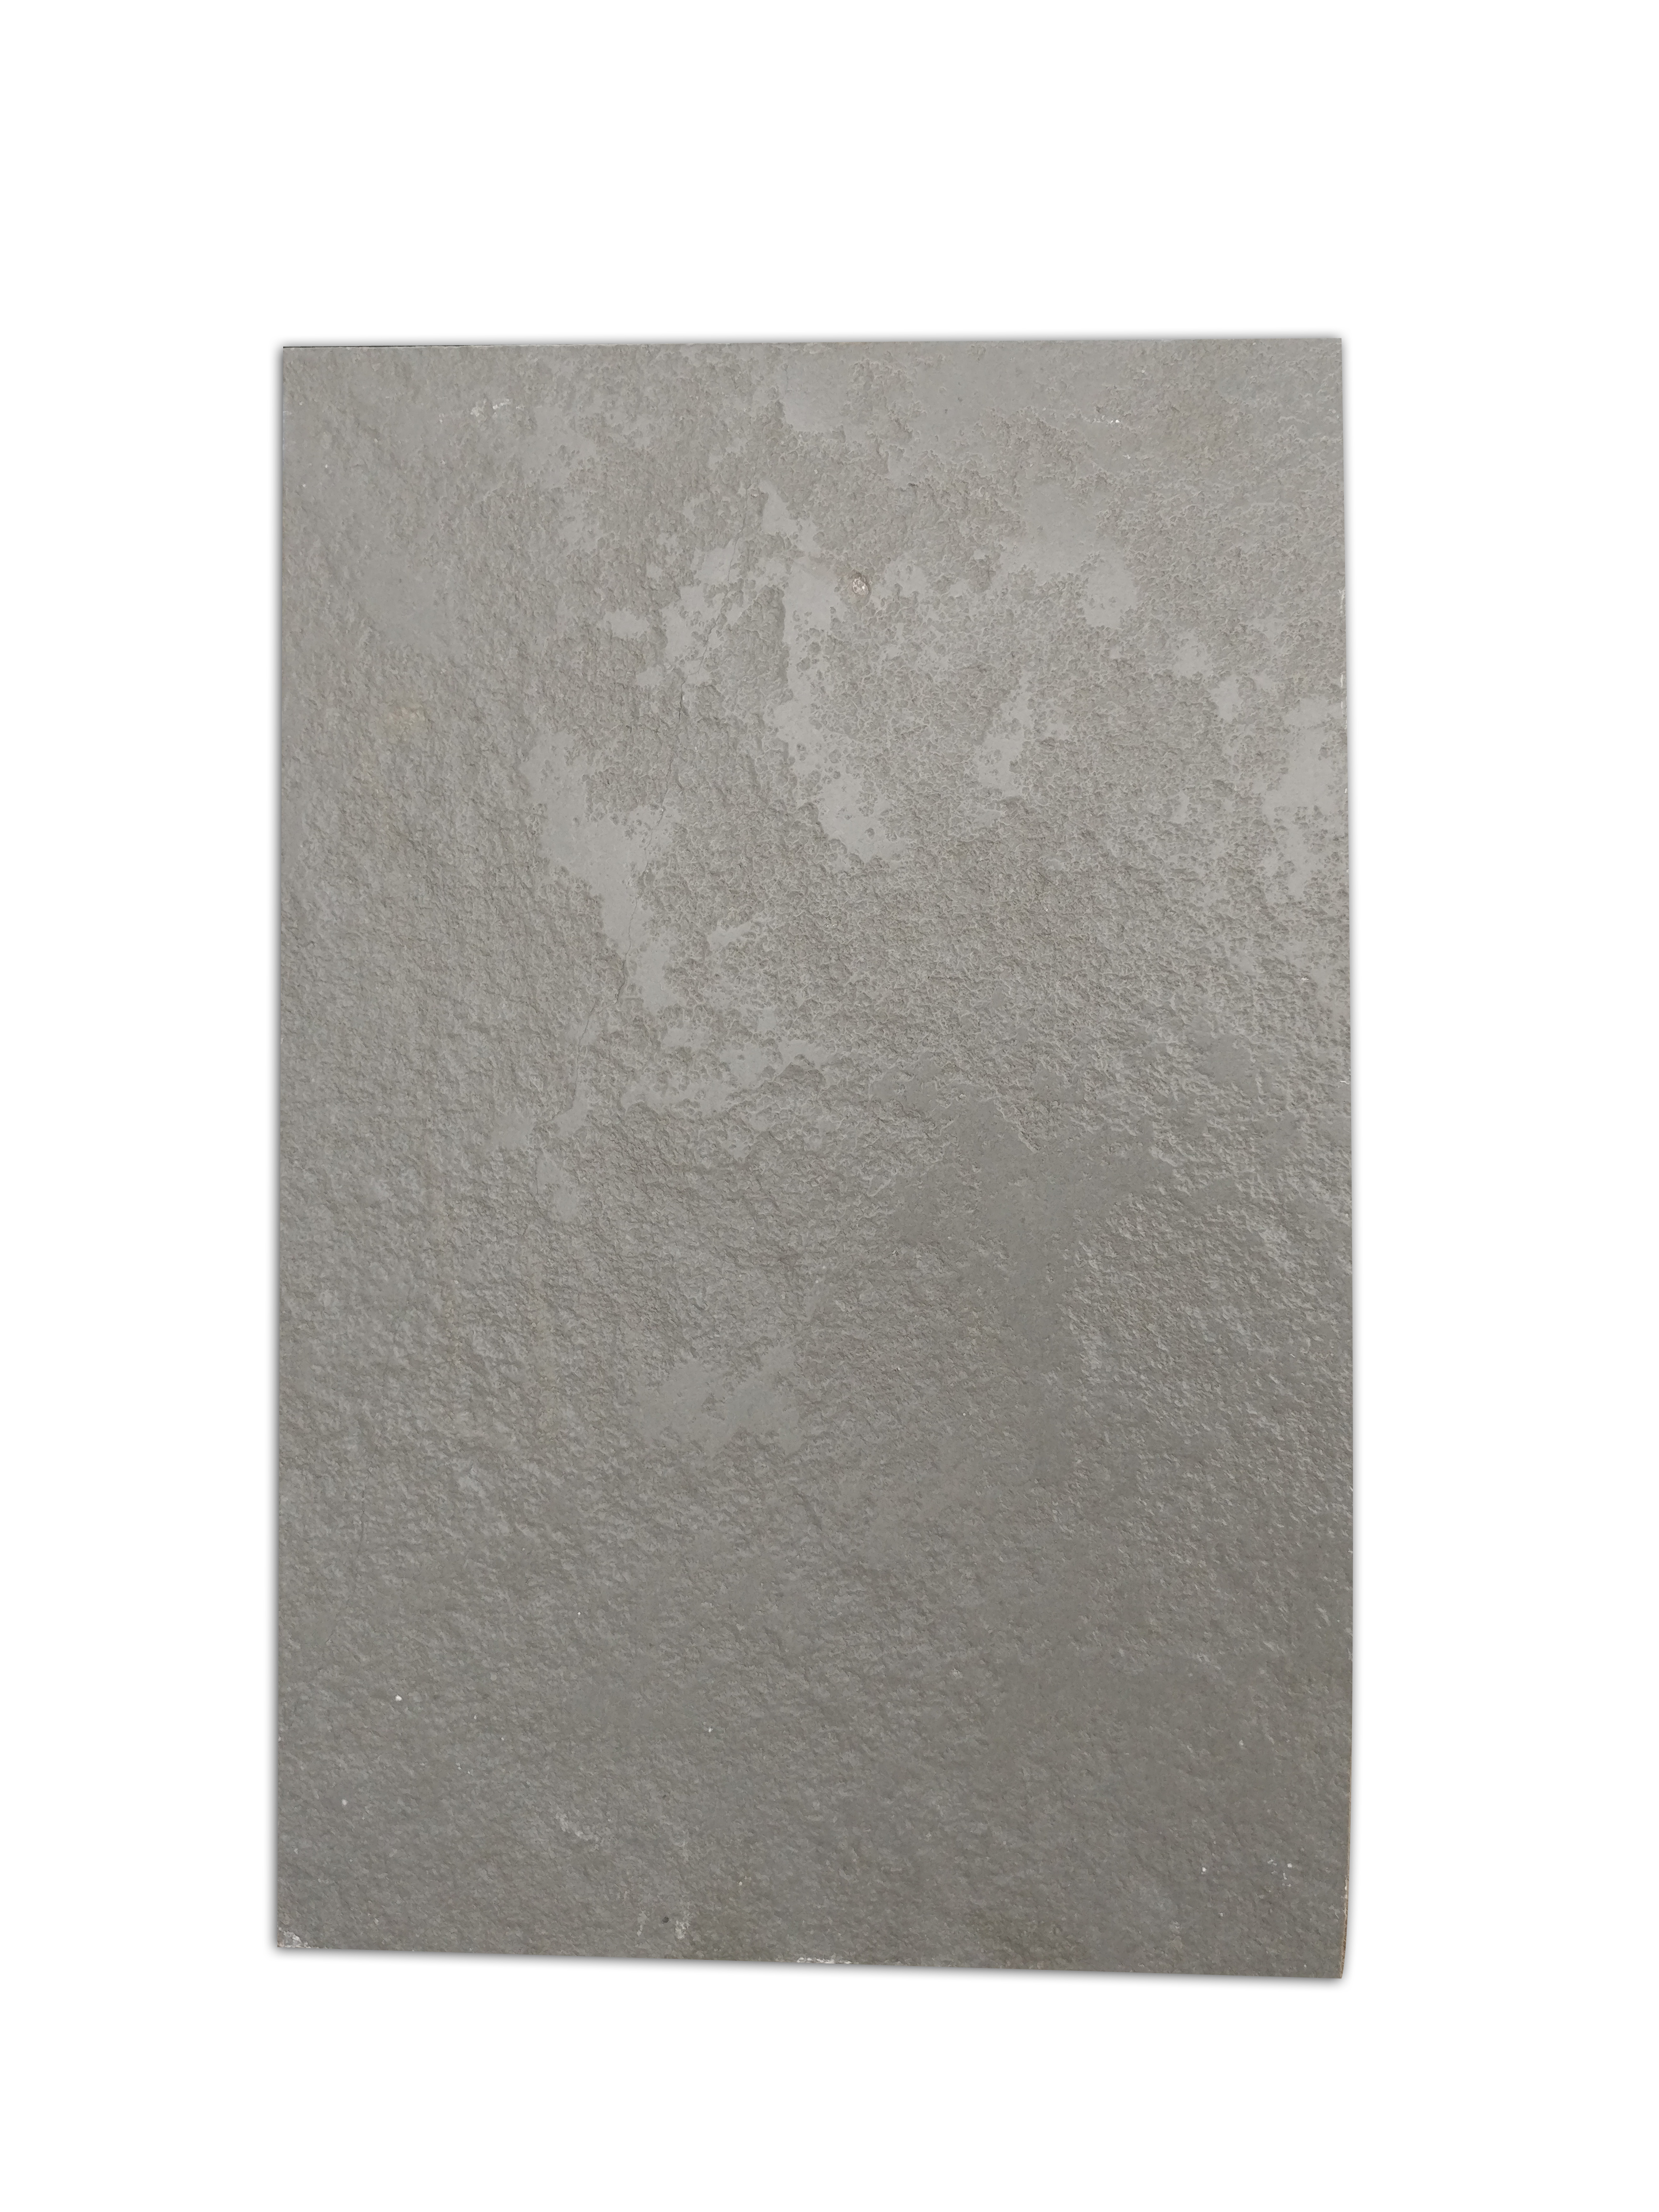 Tandur Grey Limestone Suppliers